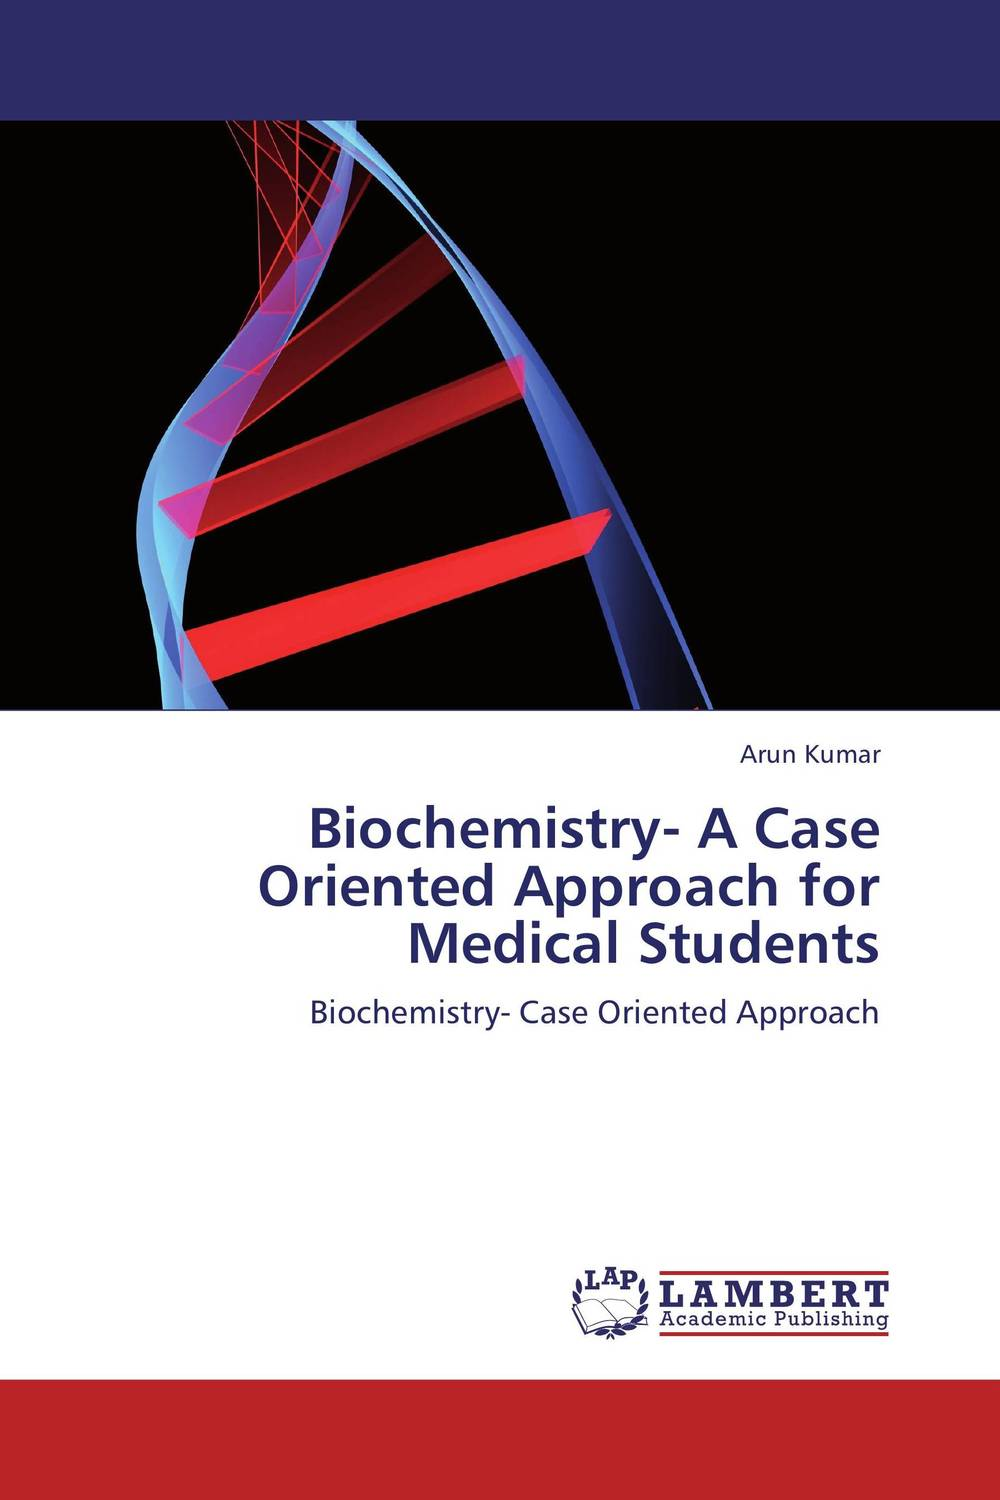 Biochemistry- A Case Oriented Approach for Medical Students